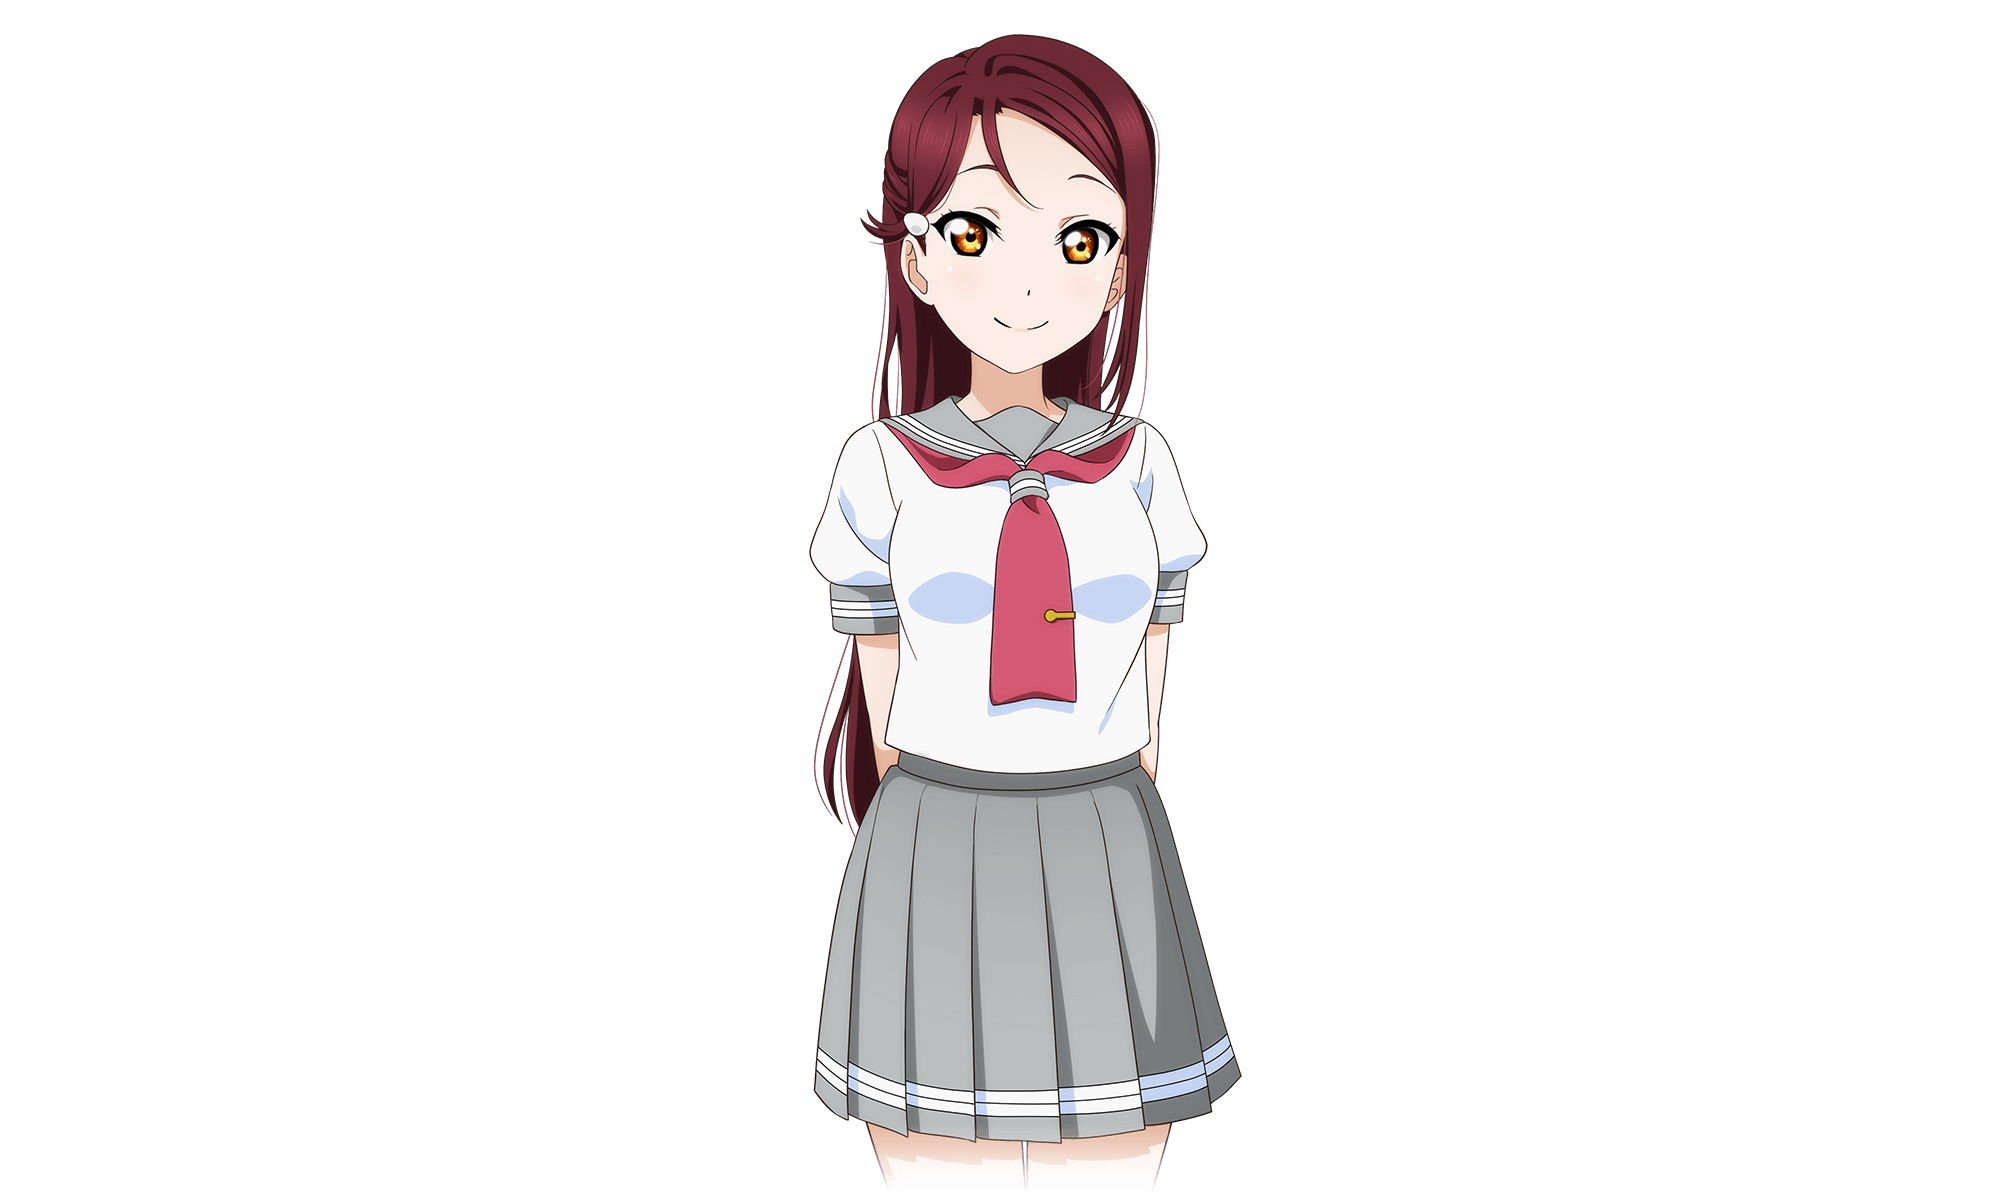 All Sakurauchi Riko stills